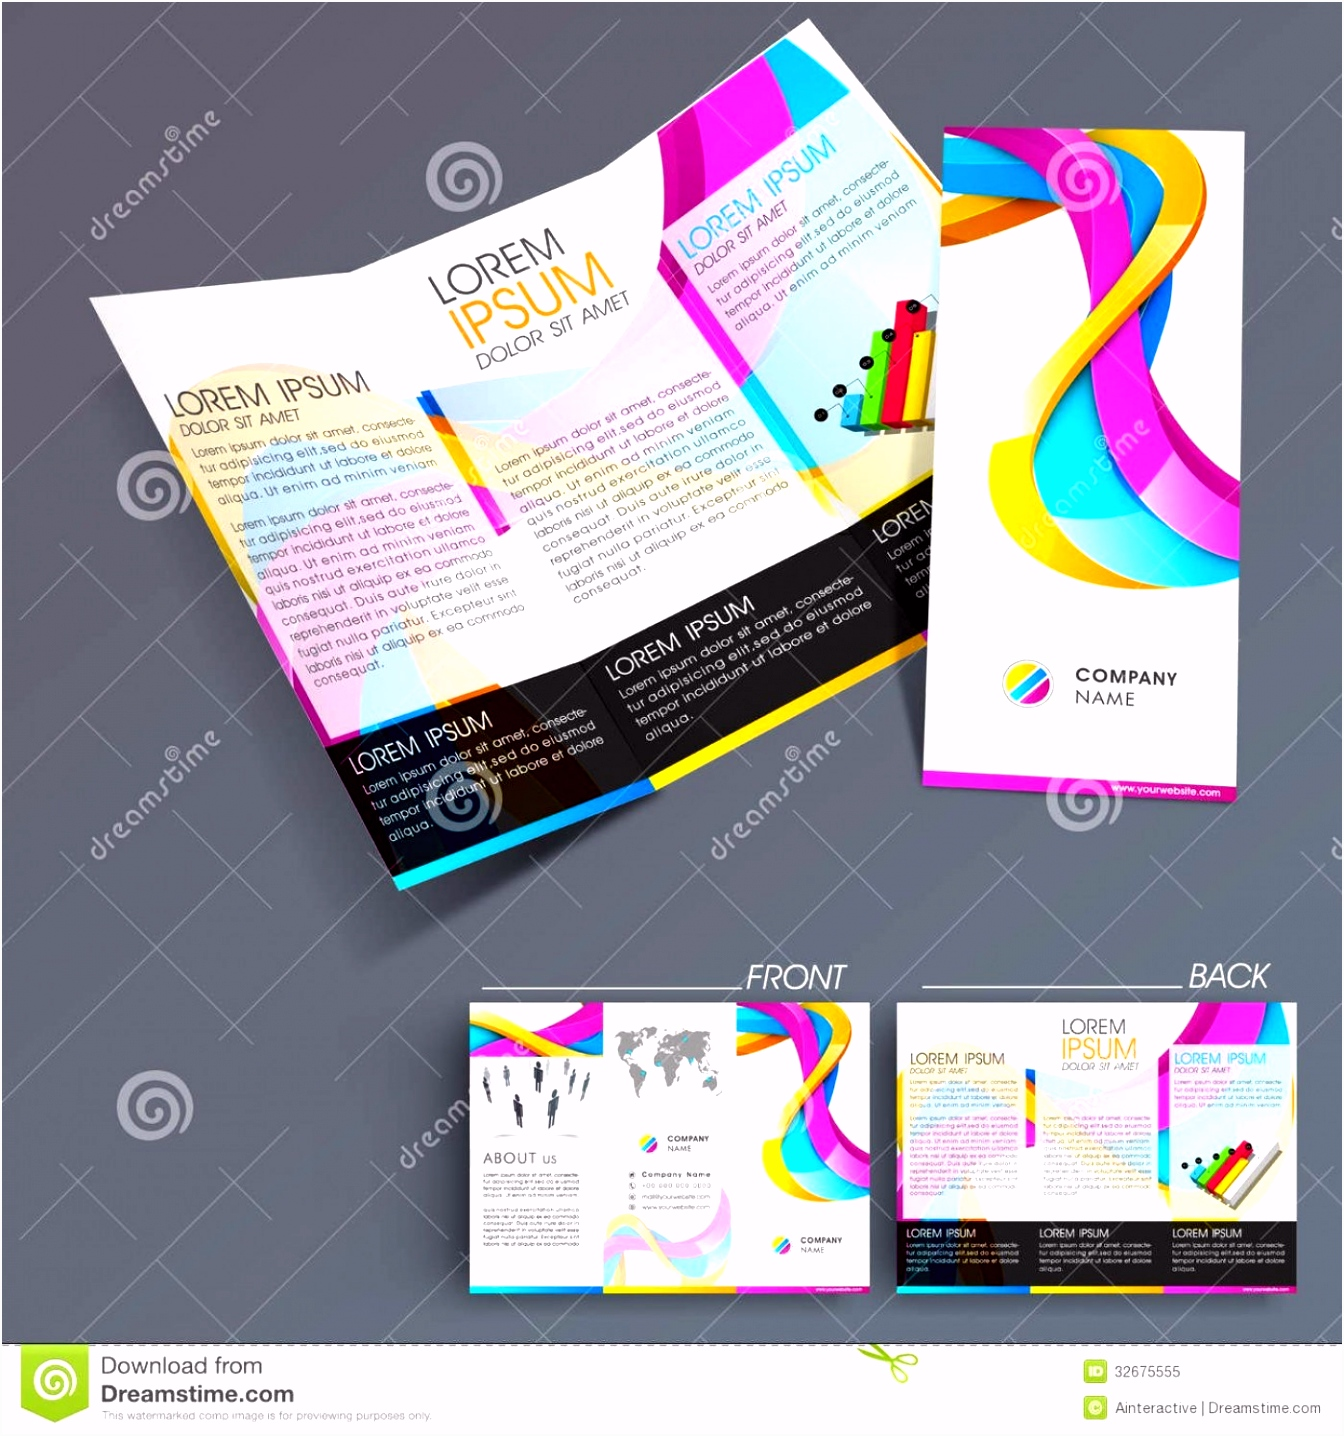 003 Flyers Design Templates Free Flyer Making Yolar Cinetonic Co